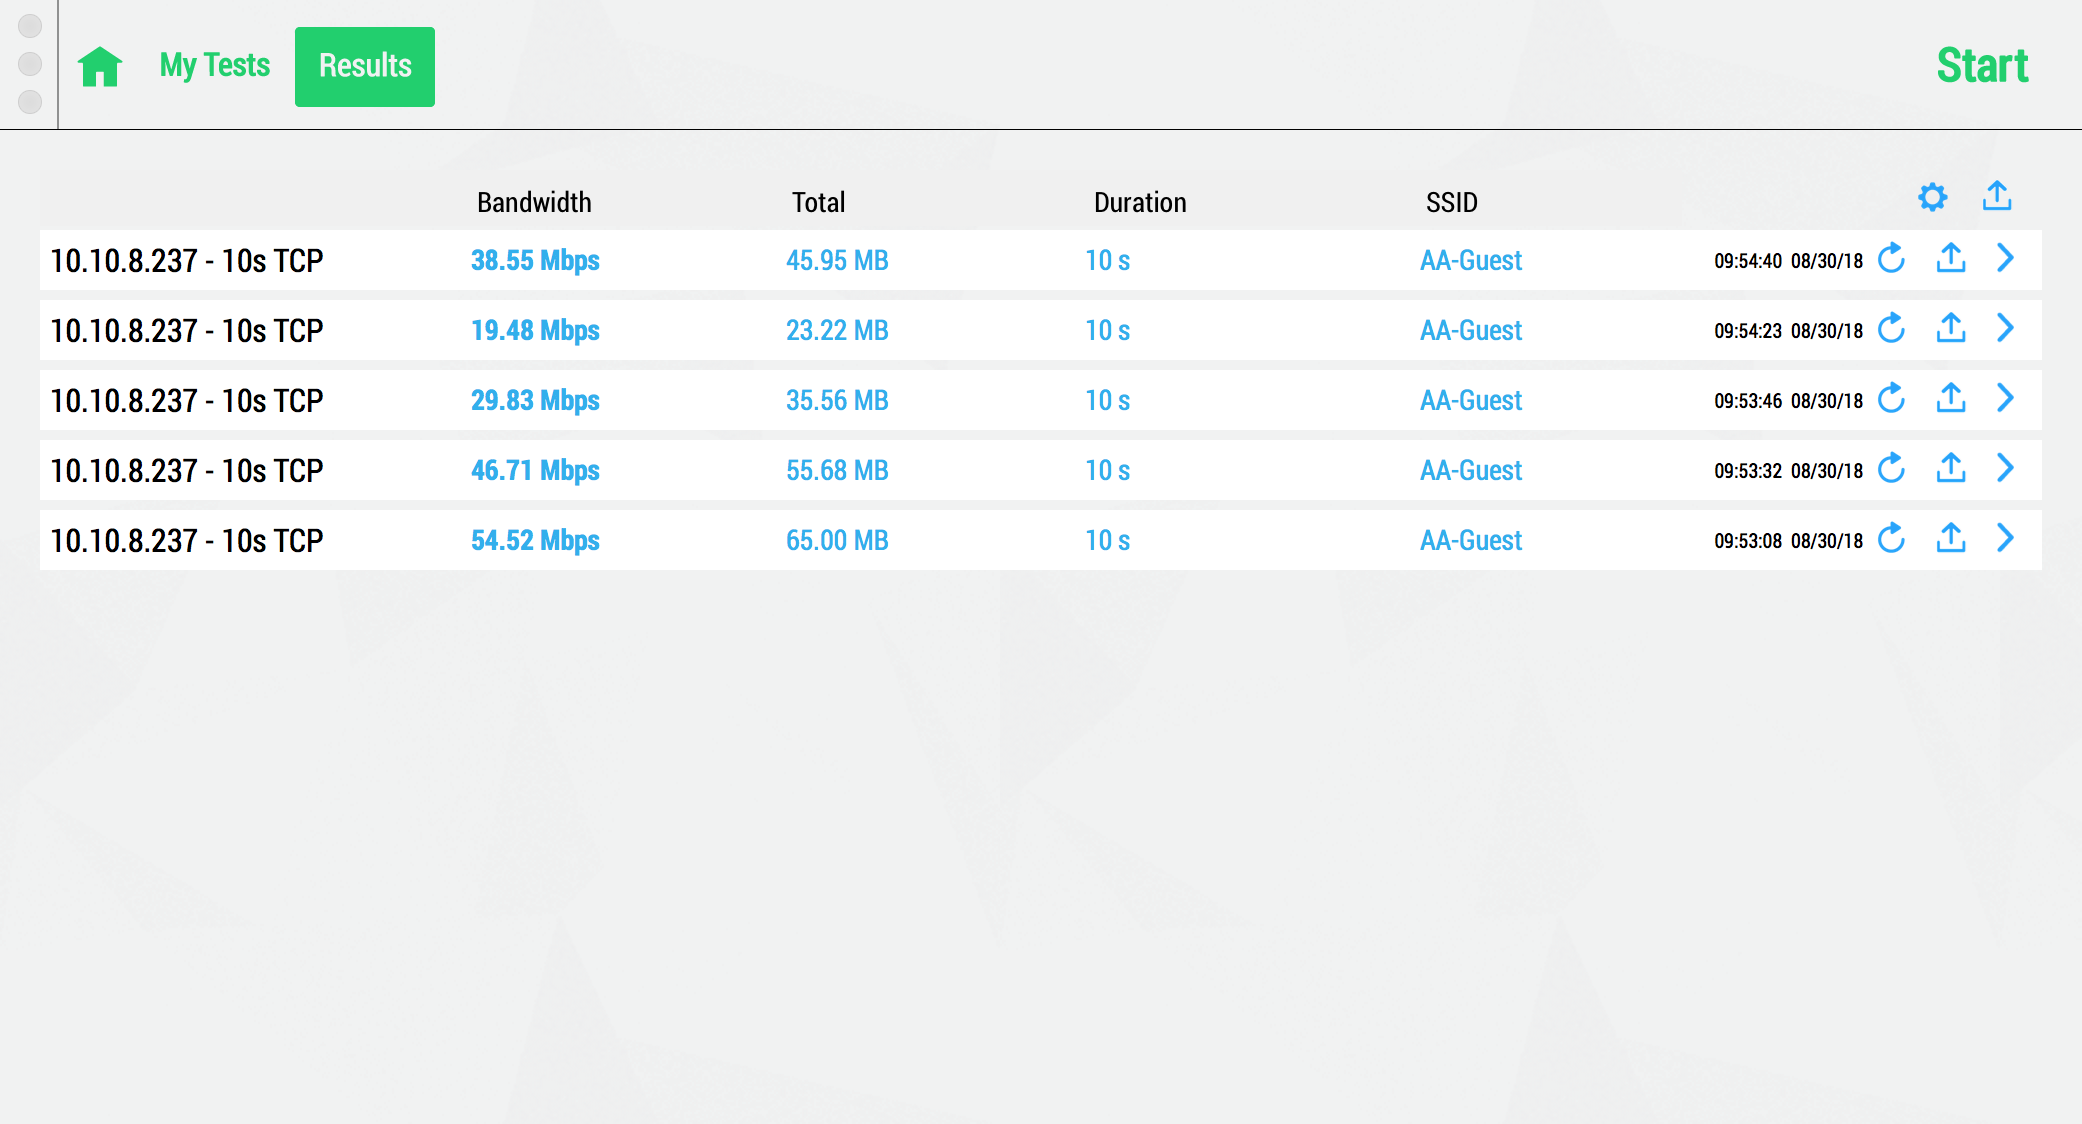 wifiperf-professional-wlan-bandwidth-speed-test-results